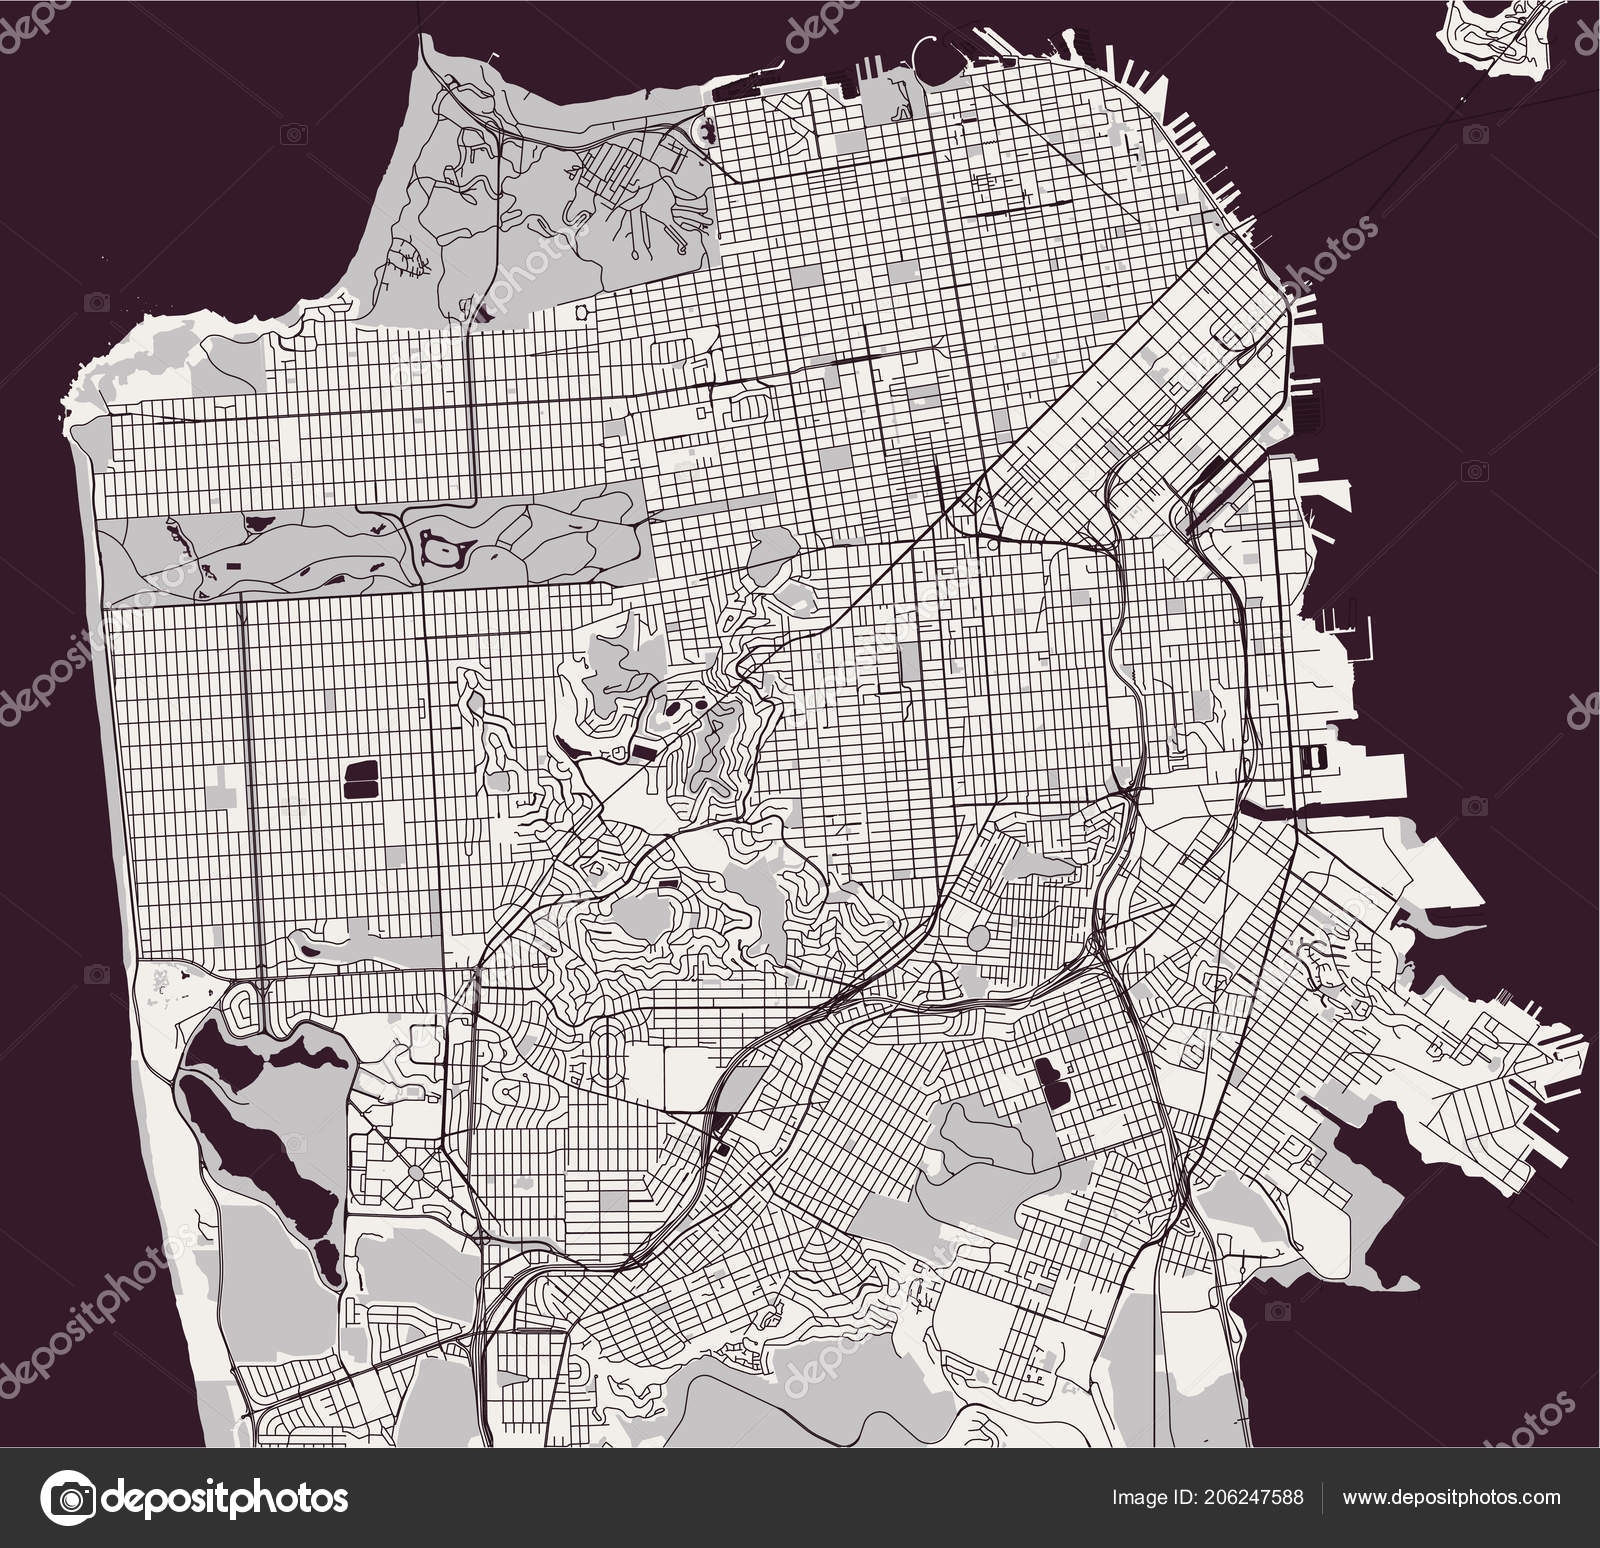 map of the city of San Francisco, USA — Stock Vector © tish11 #206247588